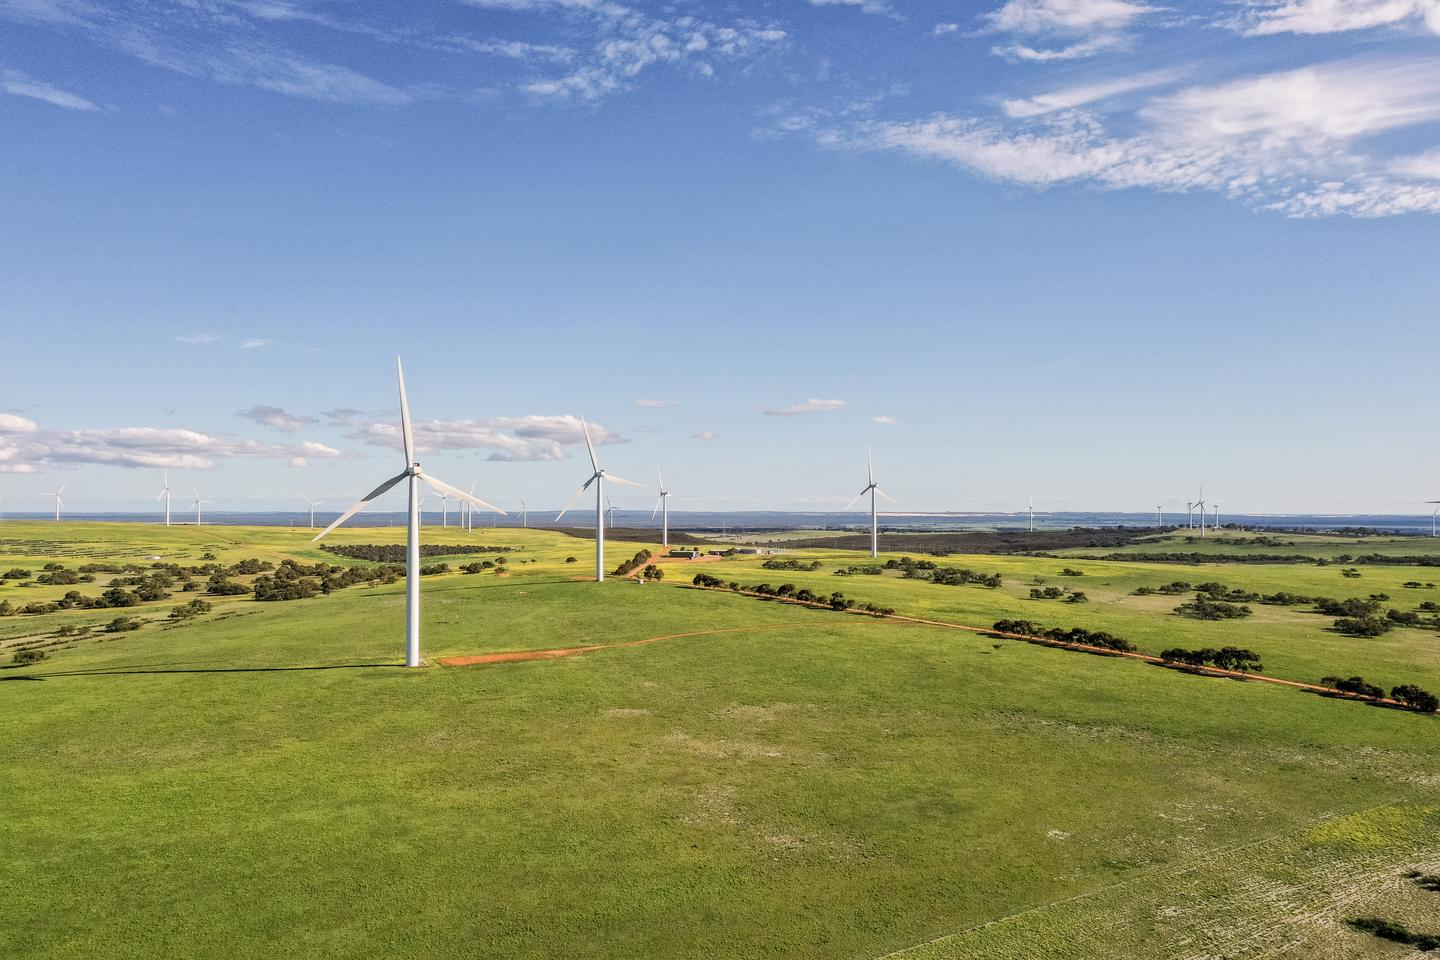 Wind farm slugged $1m over blackout issues